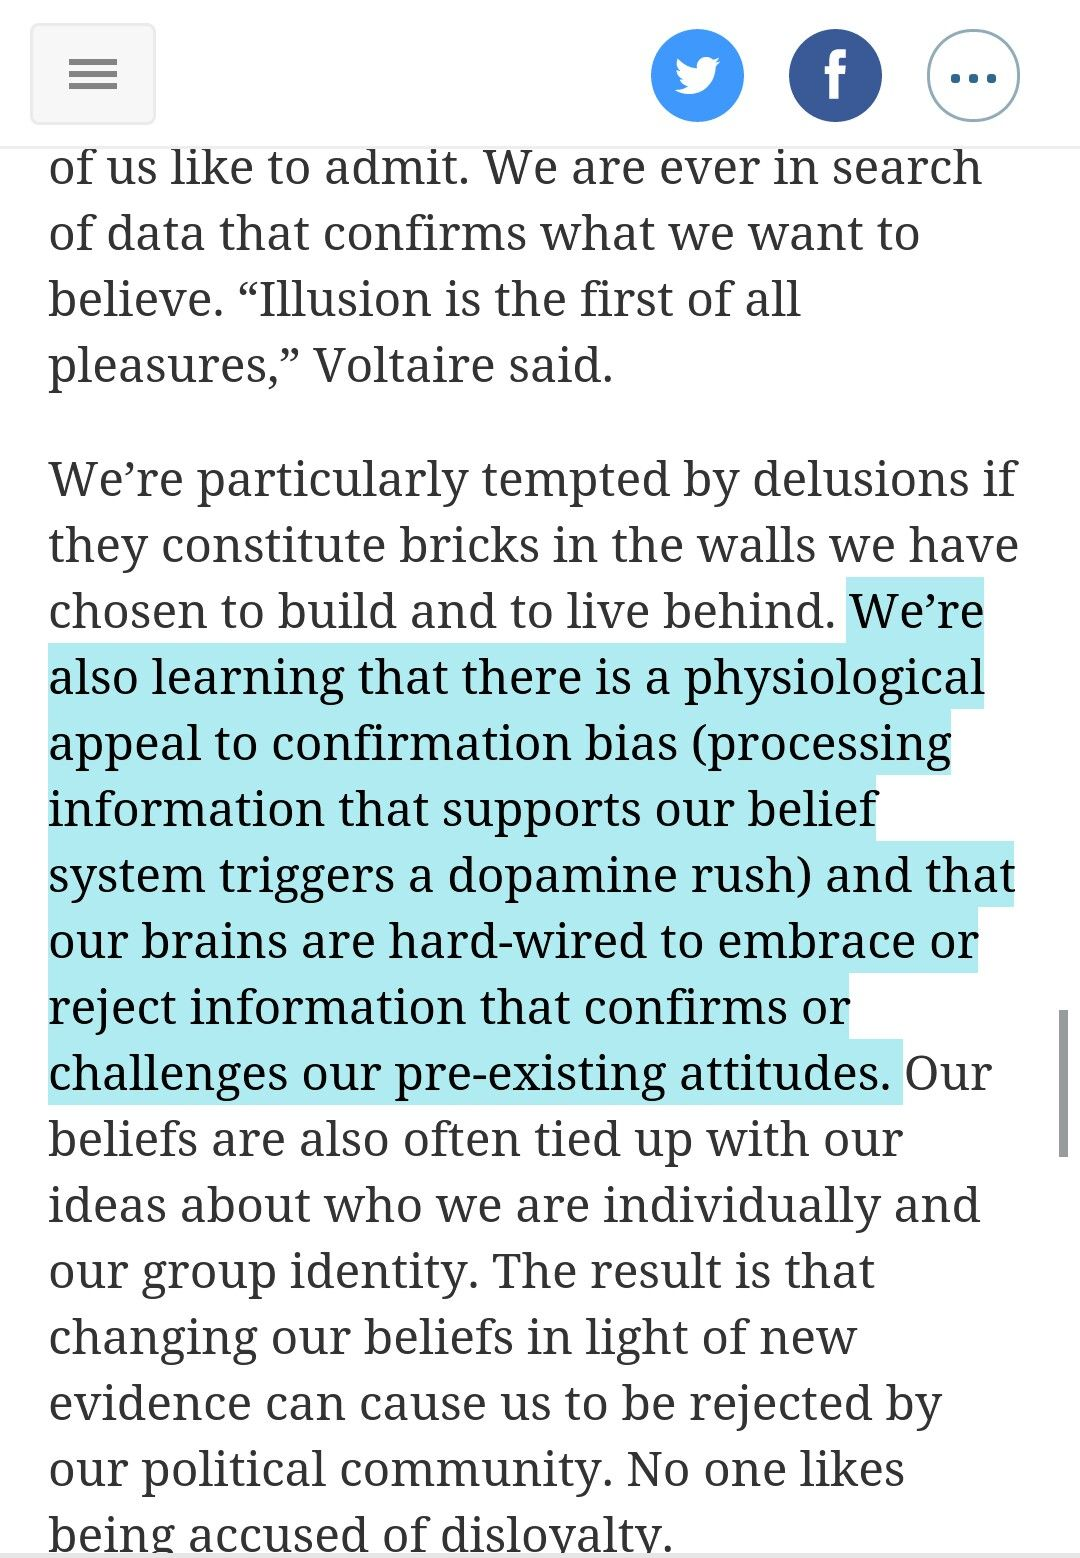 There Is A Physiological Appeal To Confirmation Bias